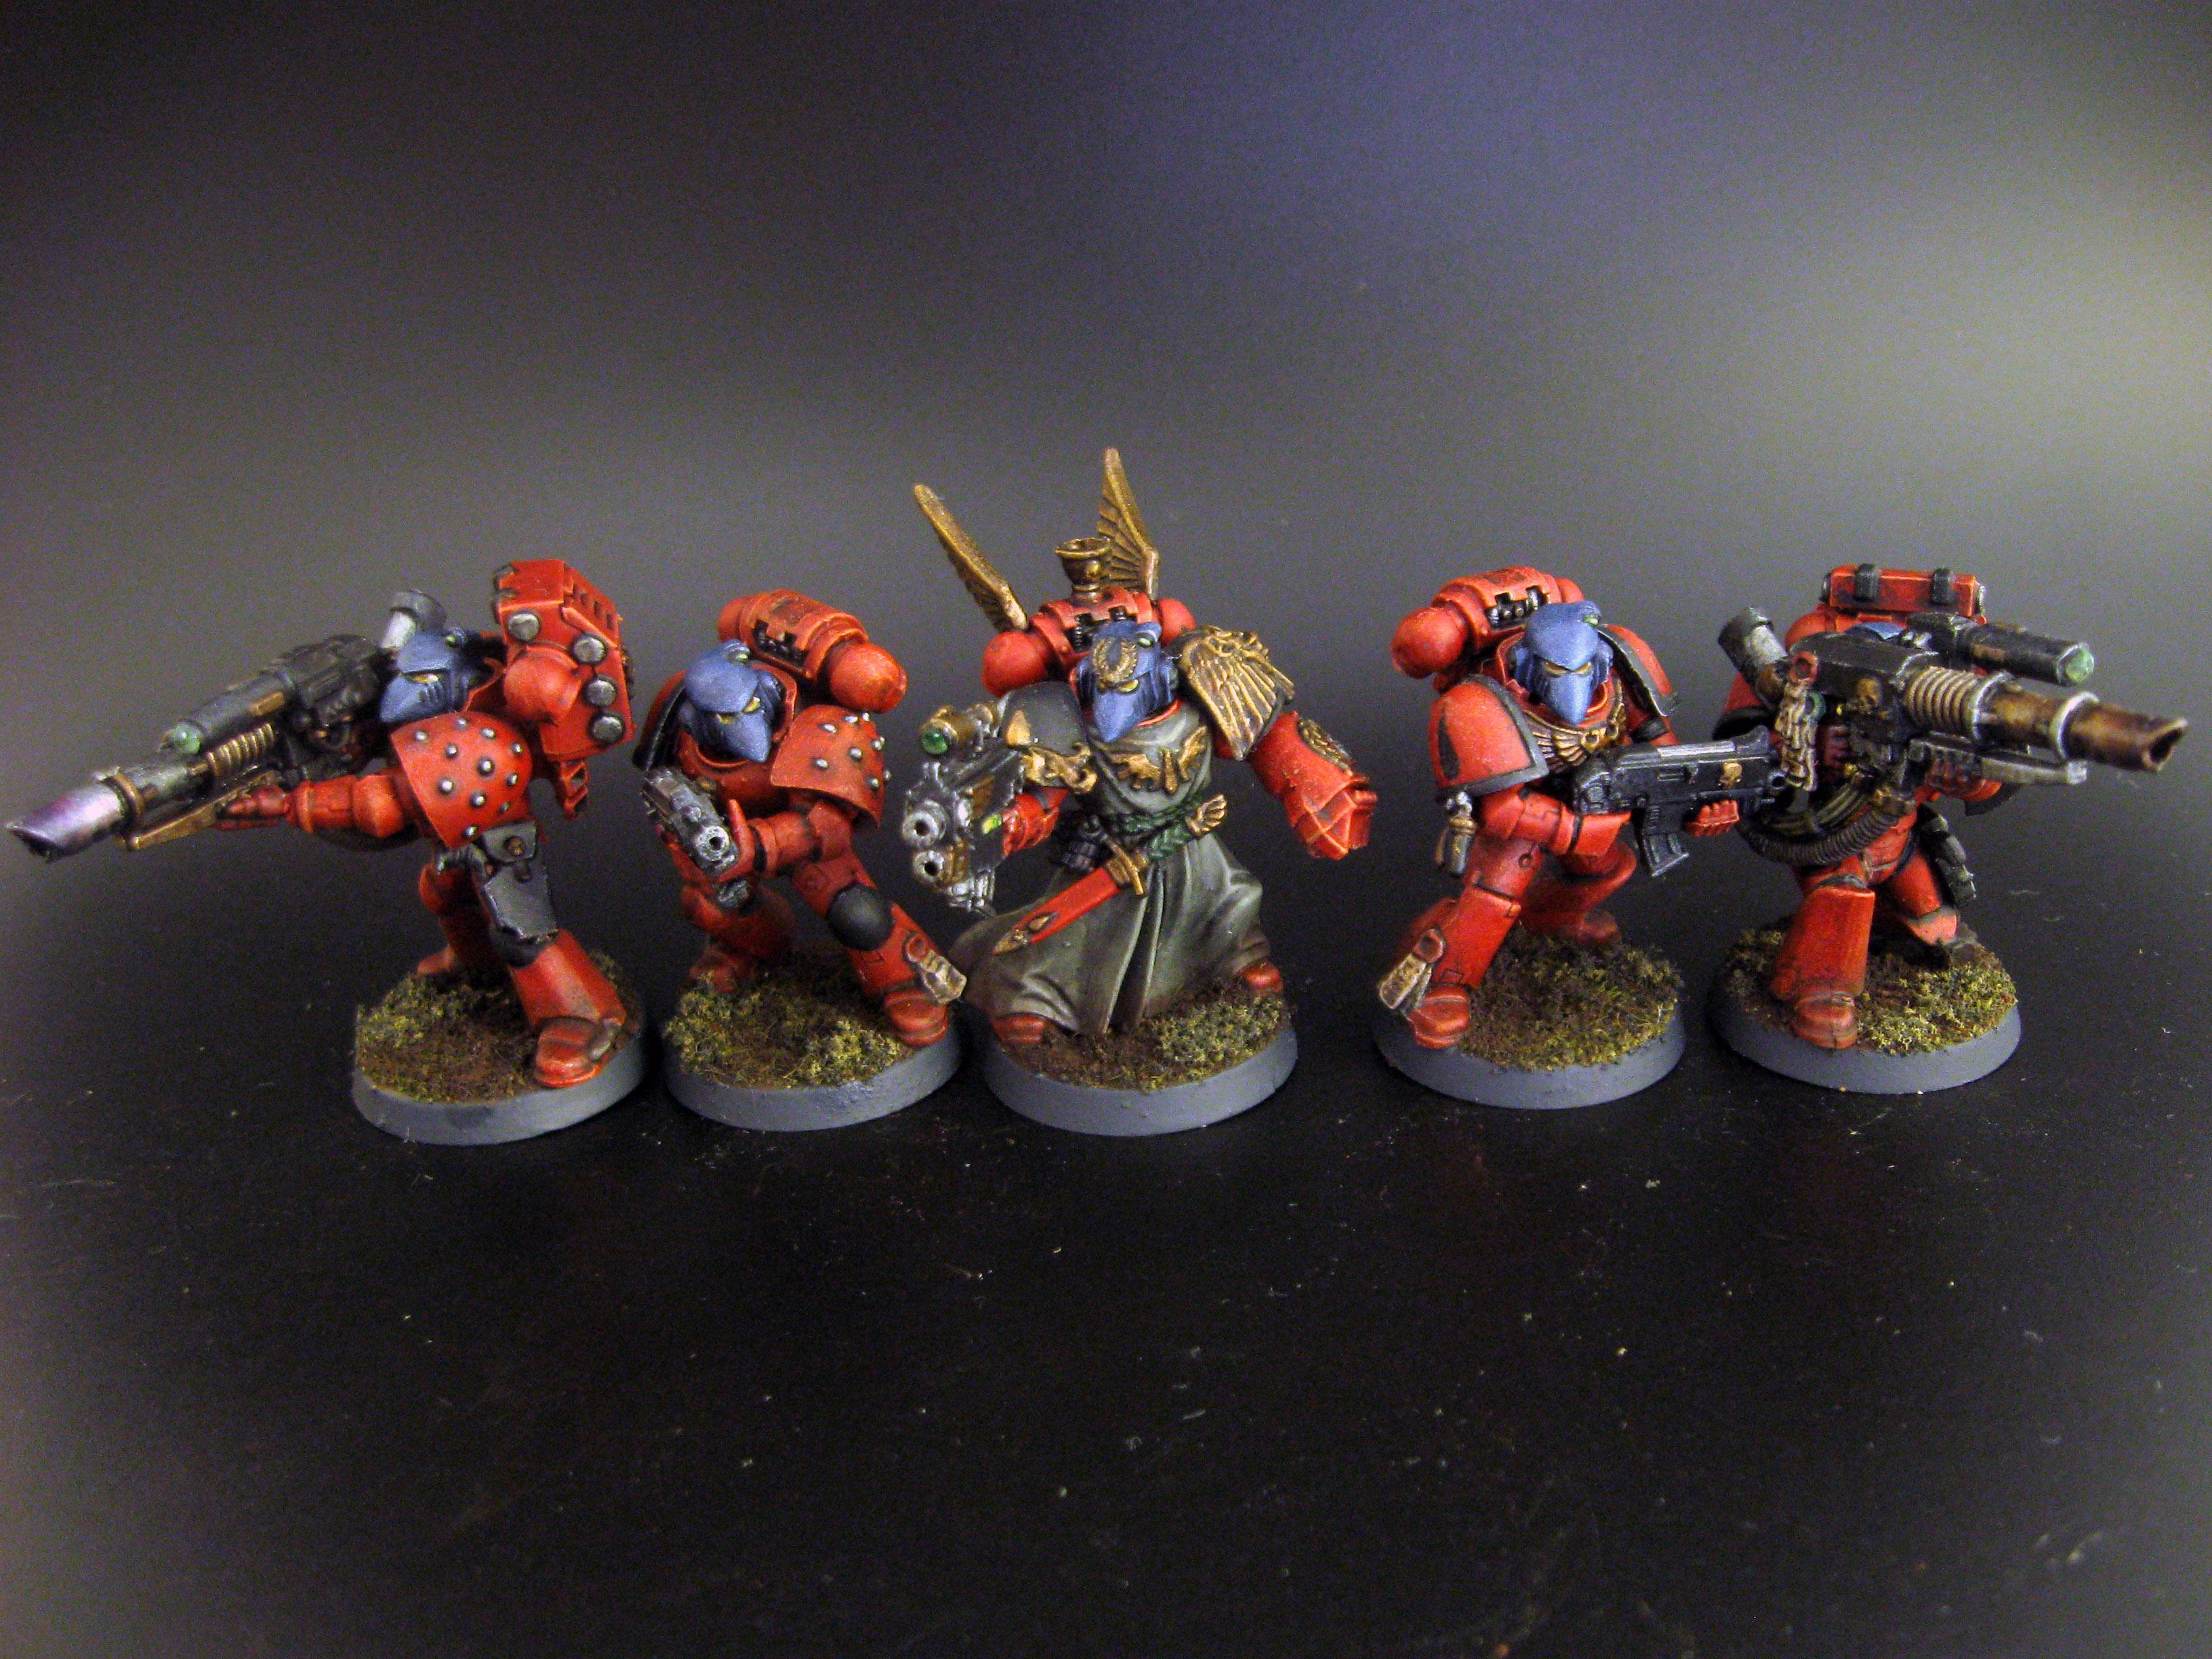 Angel, Blood, Death, Forge World, Guard, Honour, Meph, Space Marines, Tactical